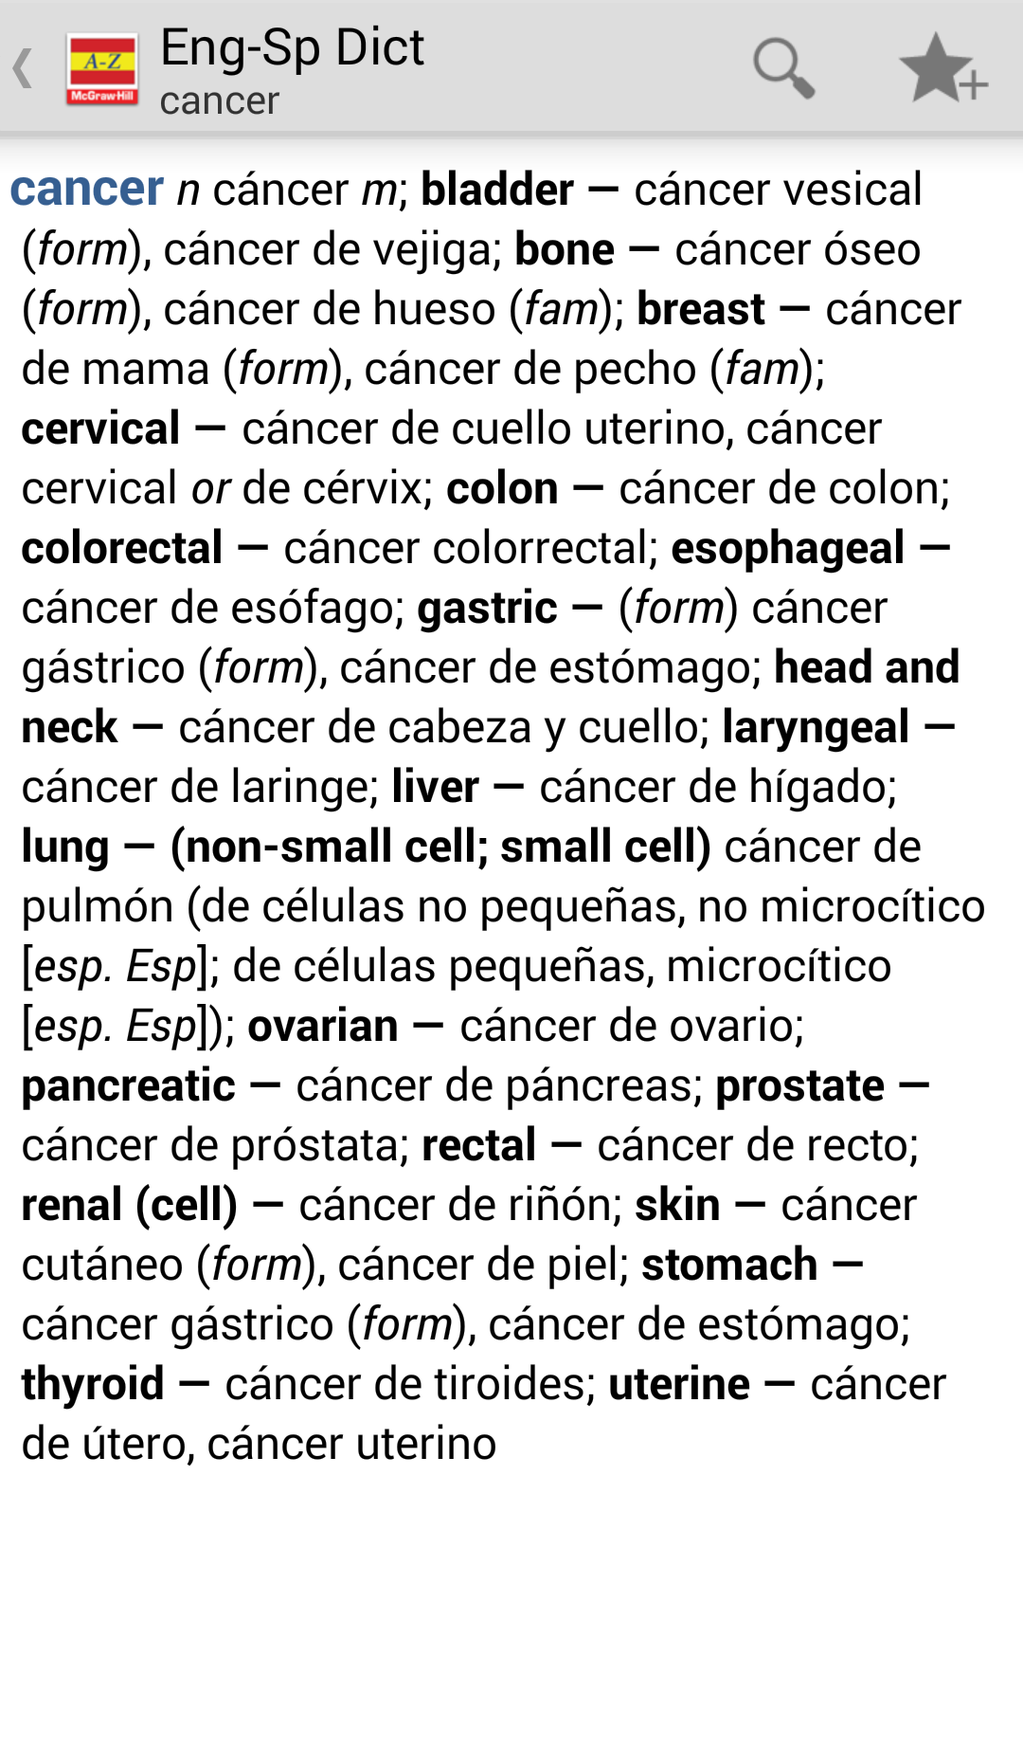 English-Spanish/Spanish-English Medical Dictionary Screenshot